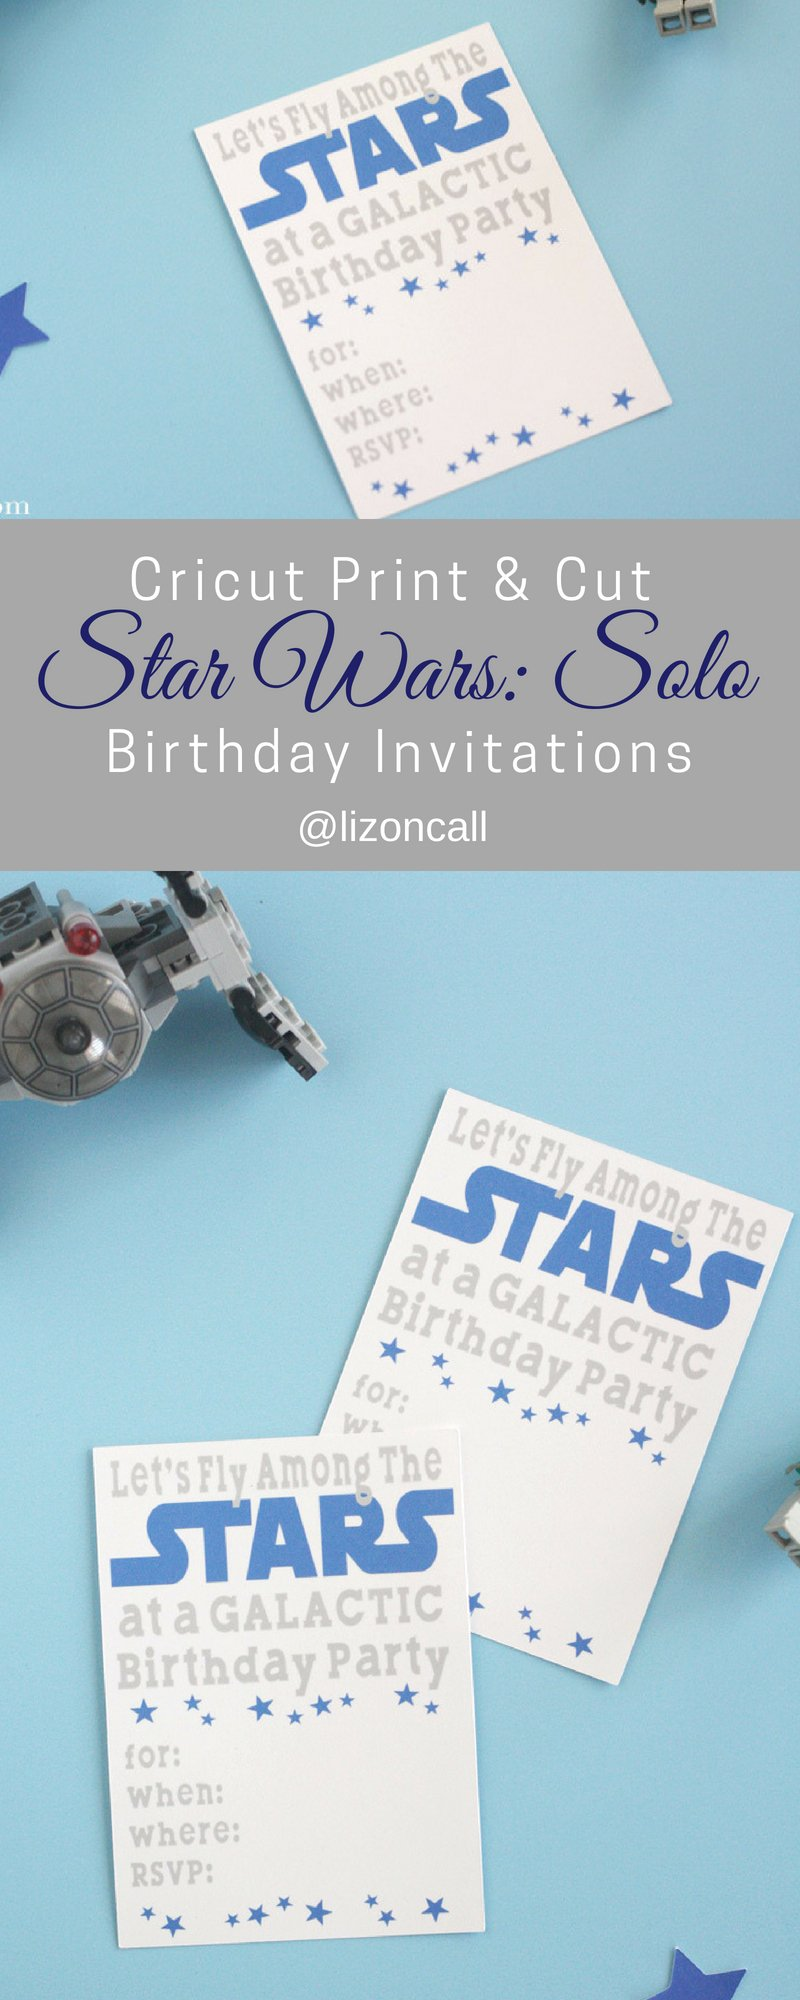 Let all the Jedi know about the Galactic birthday party with these Solo inspired Star Wars birthday party invitations. They are super easy to make using the print and cut feature of your Cricut cutting machine. #starwars #birthdayparty